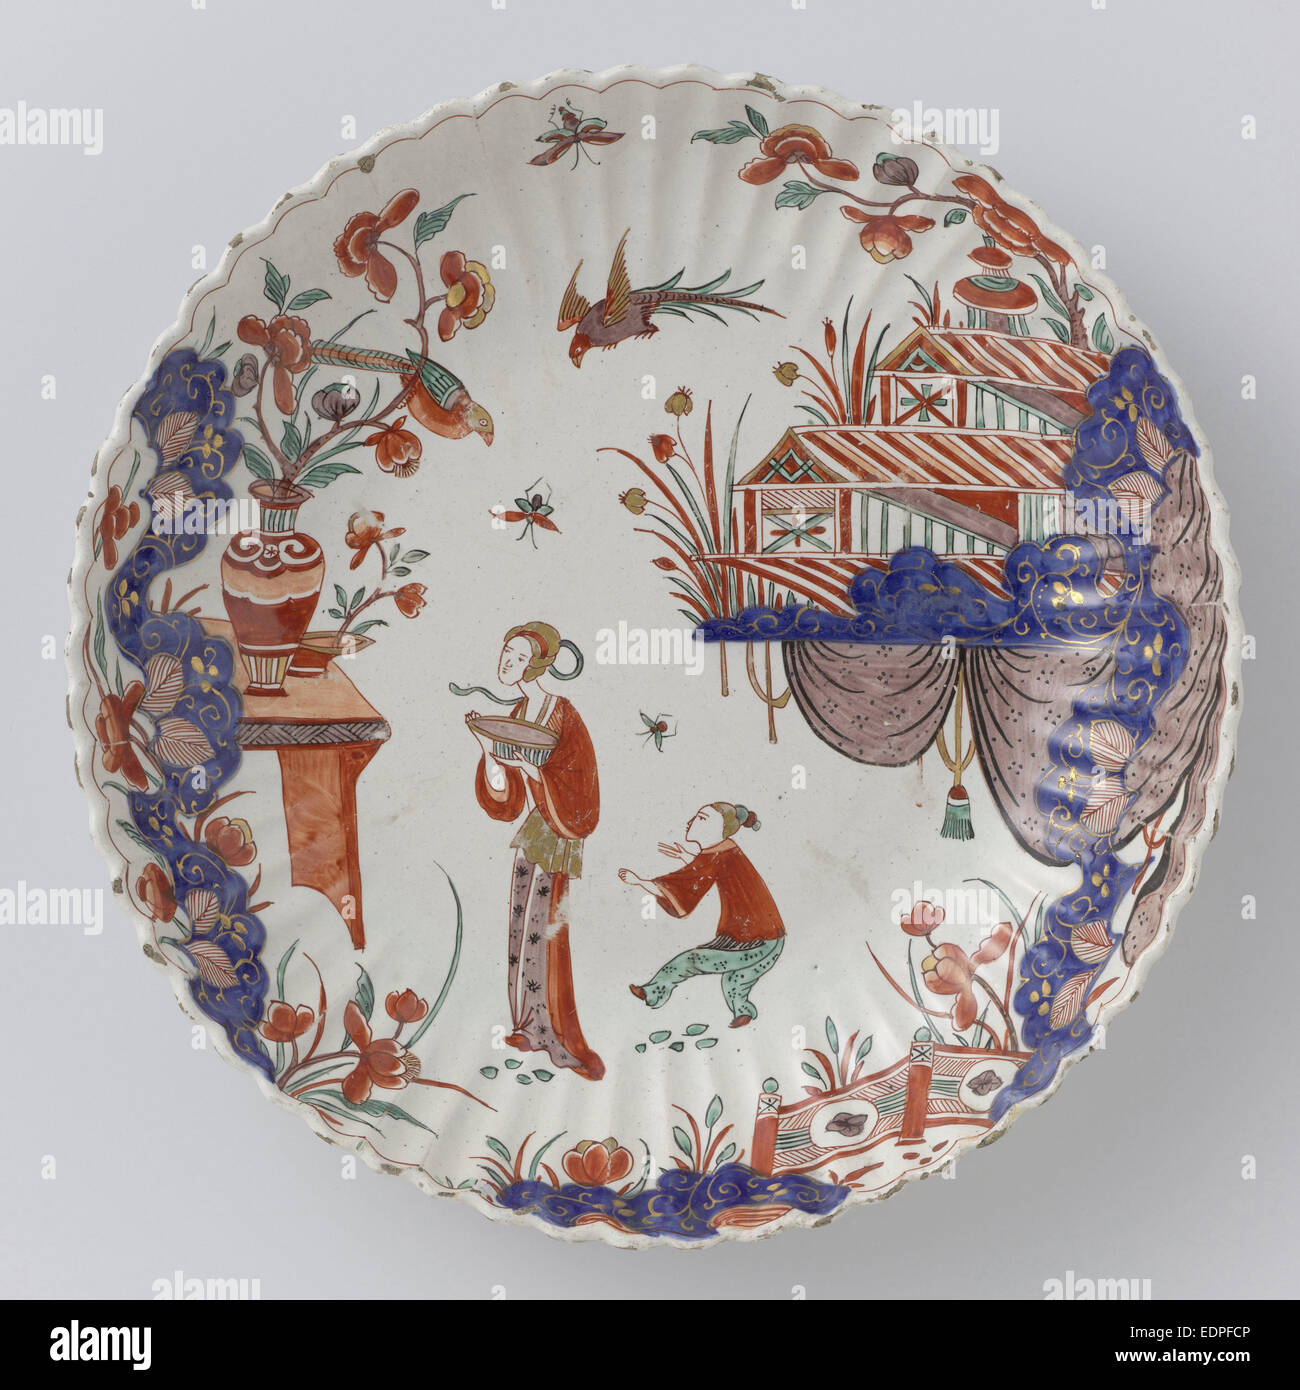 Round dish polychrome painted earthenware with Japanese decor - Stock Image